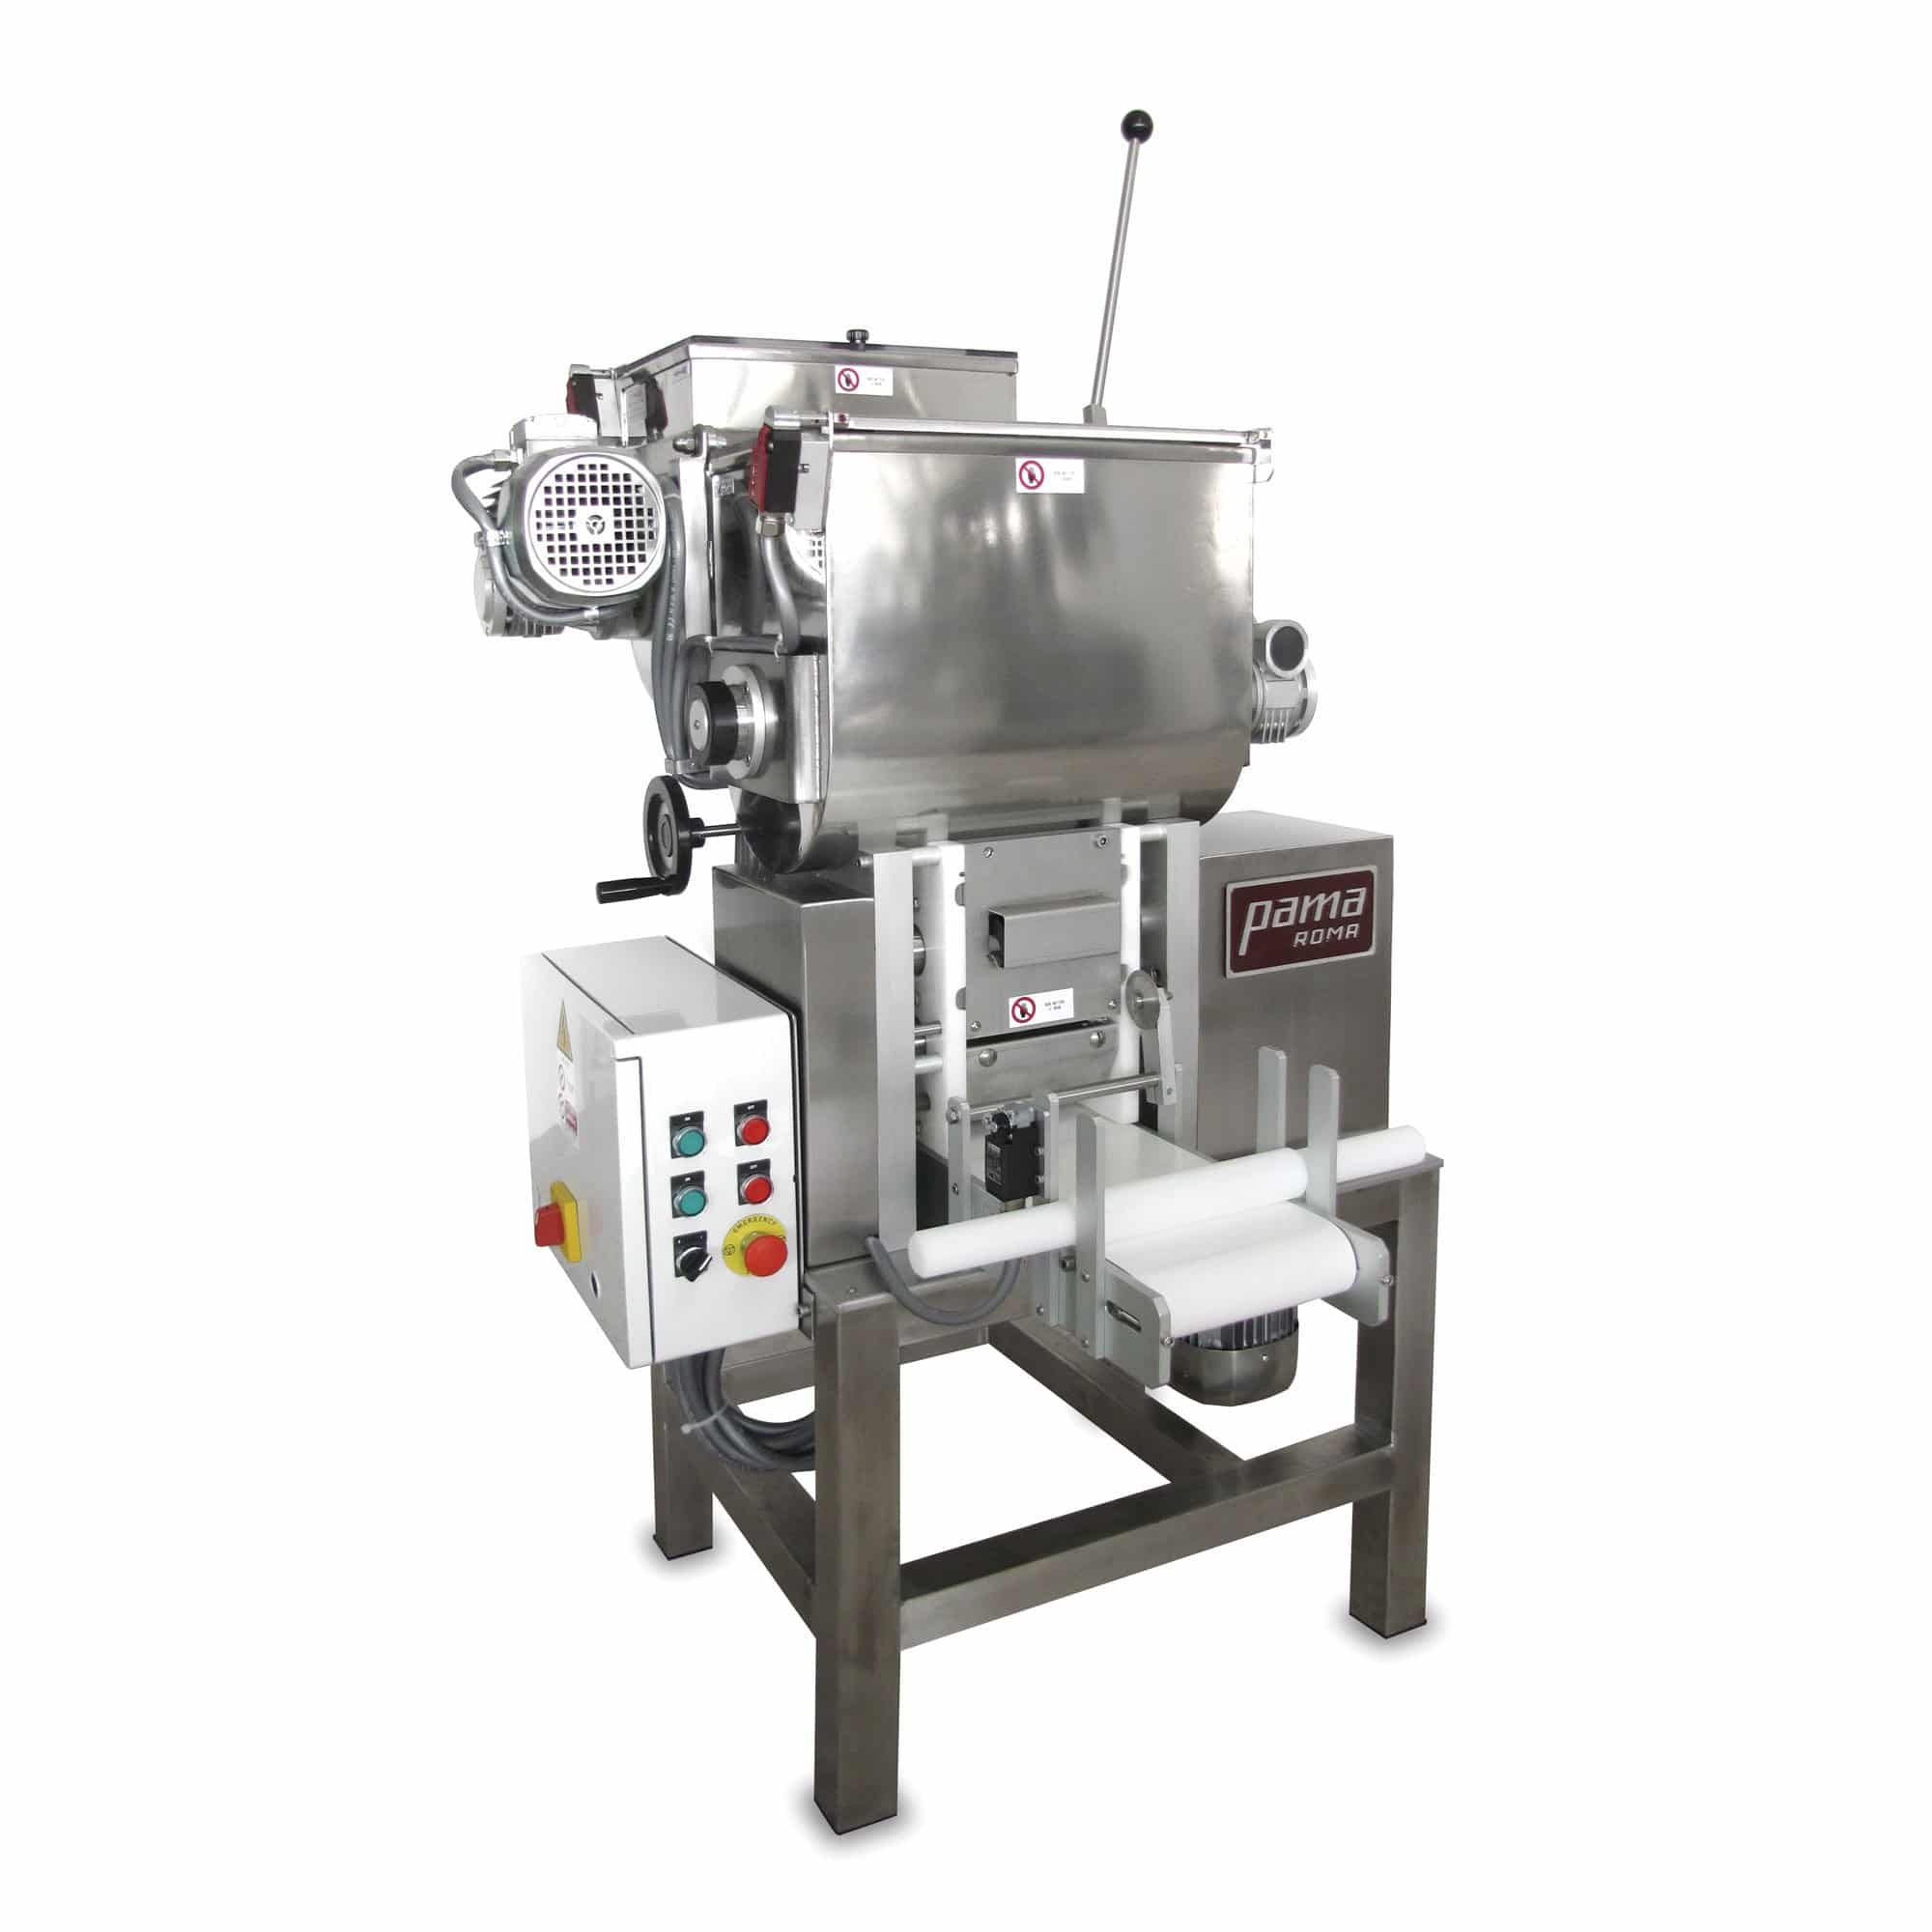 Automatic pasta sheeter for pasta factory